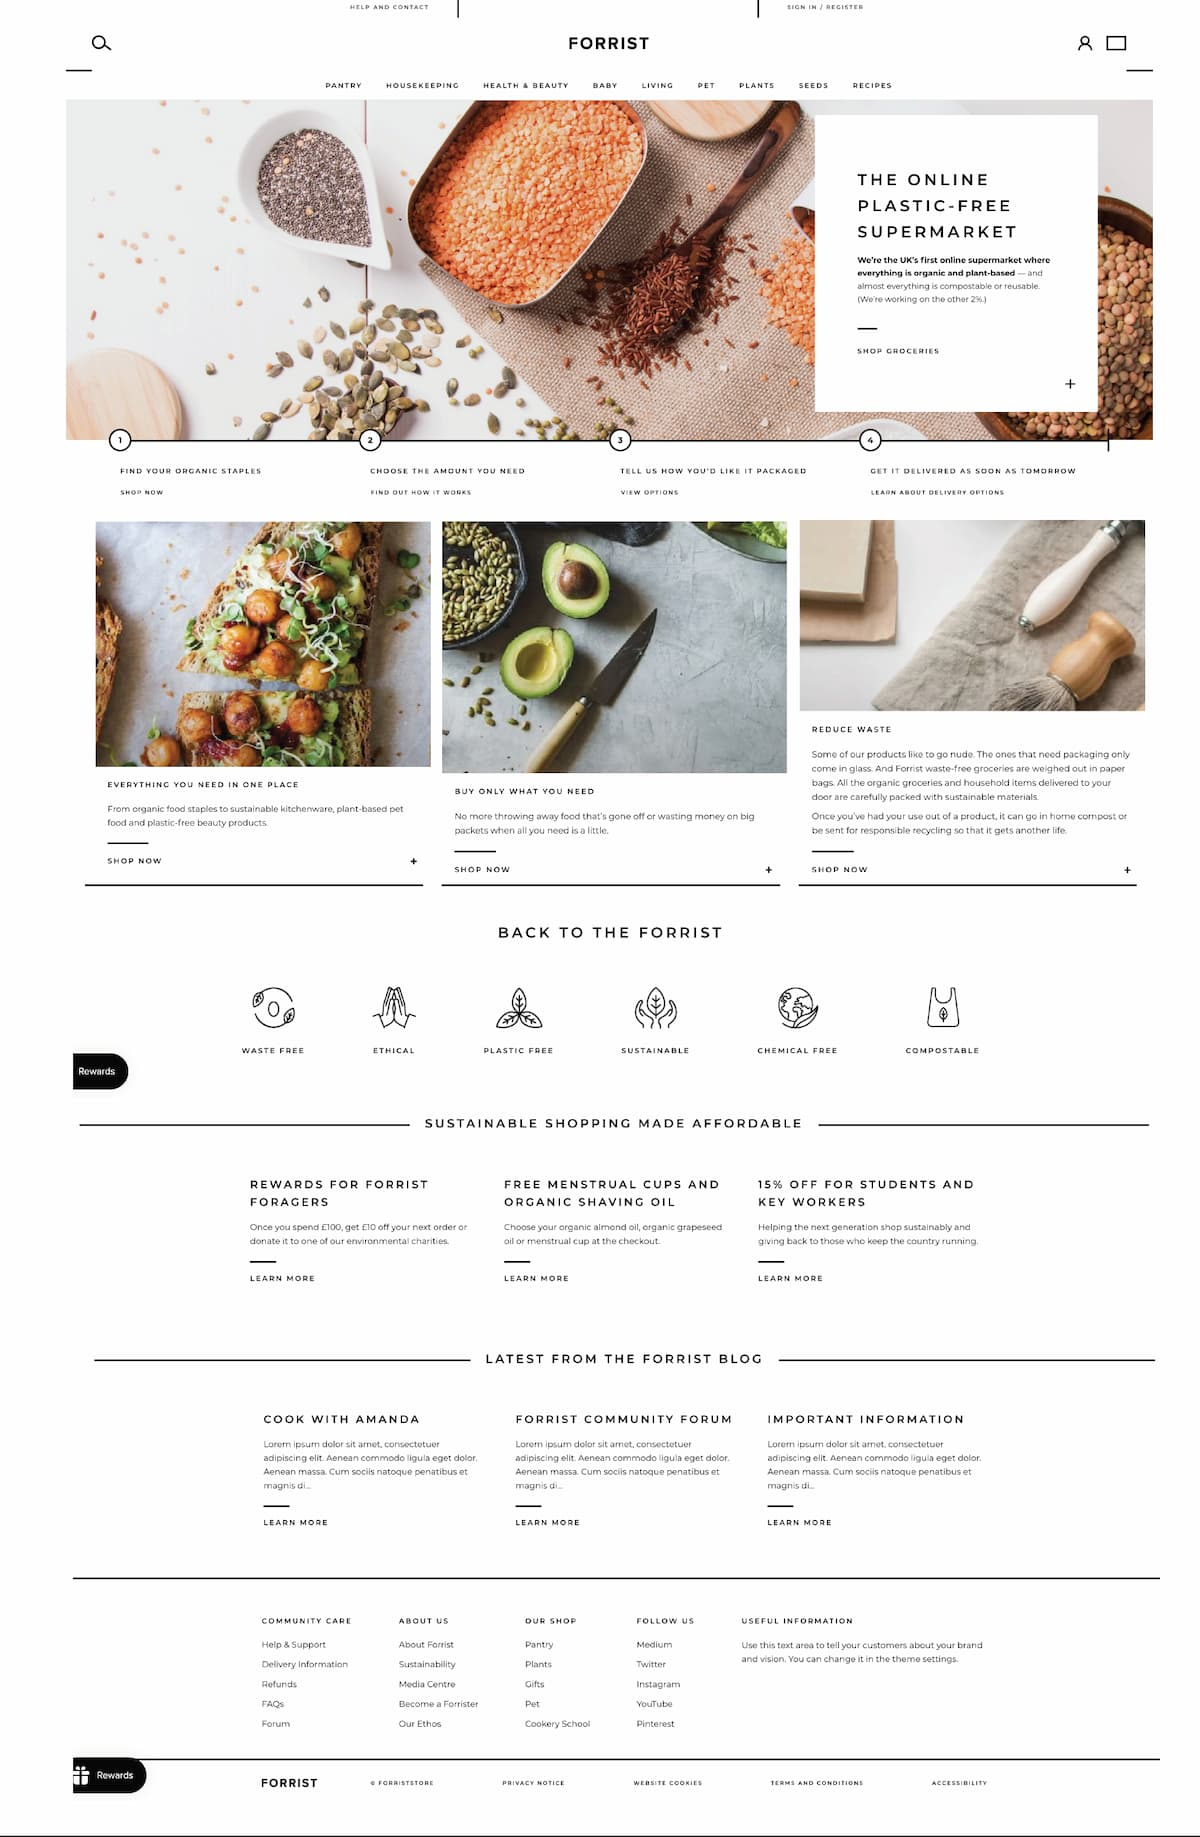 The finished Forrist home page, which shows the copy that we tested and optimised in the client's Shopify theme